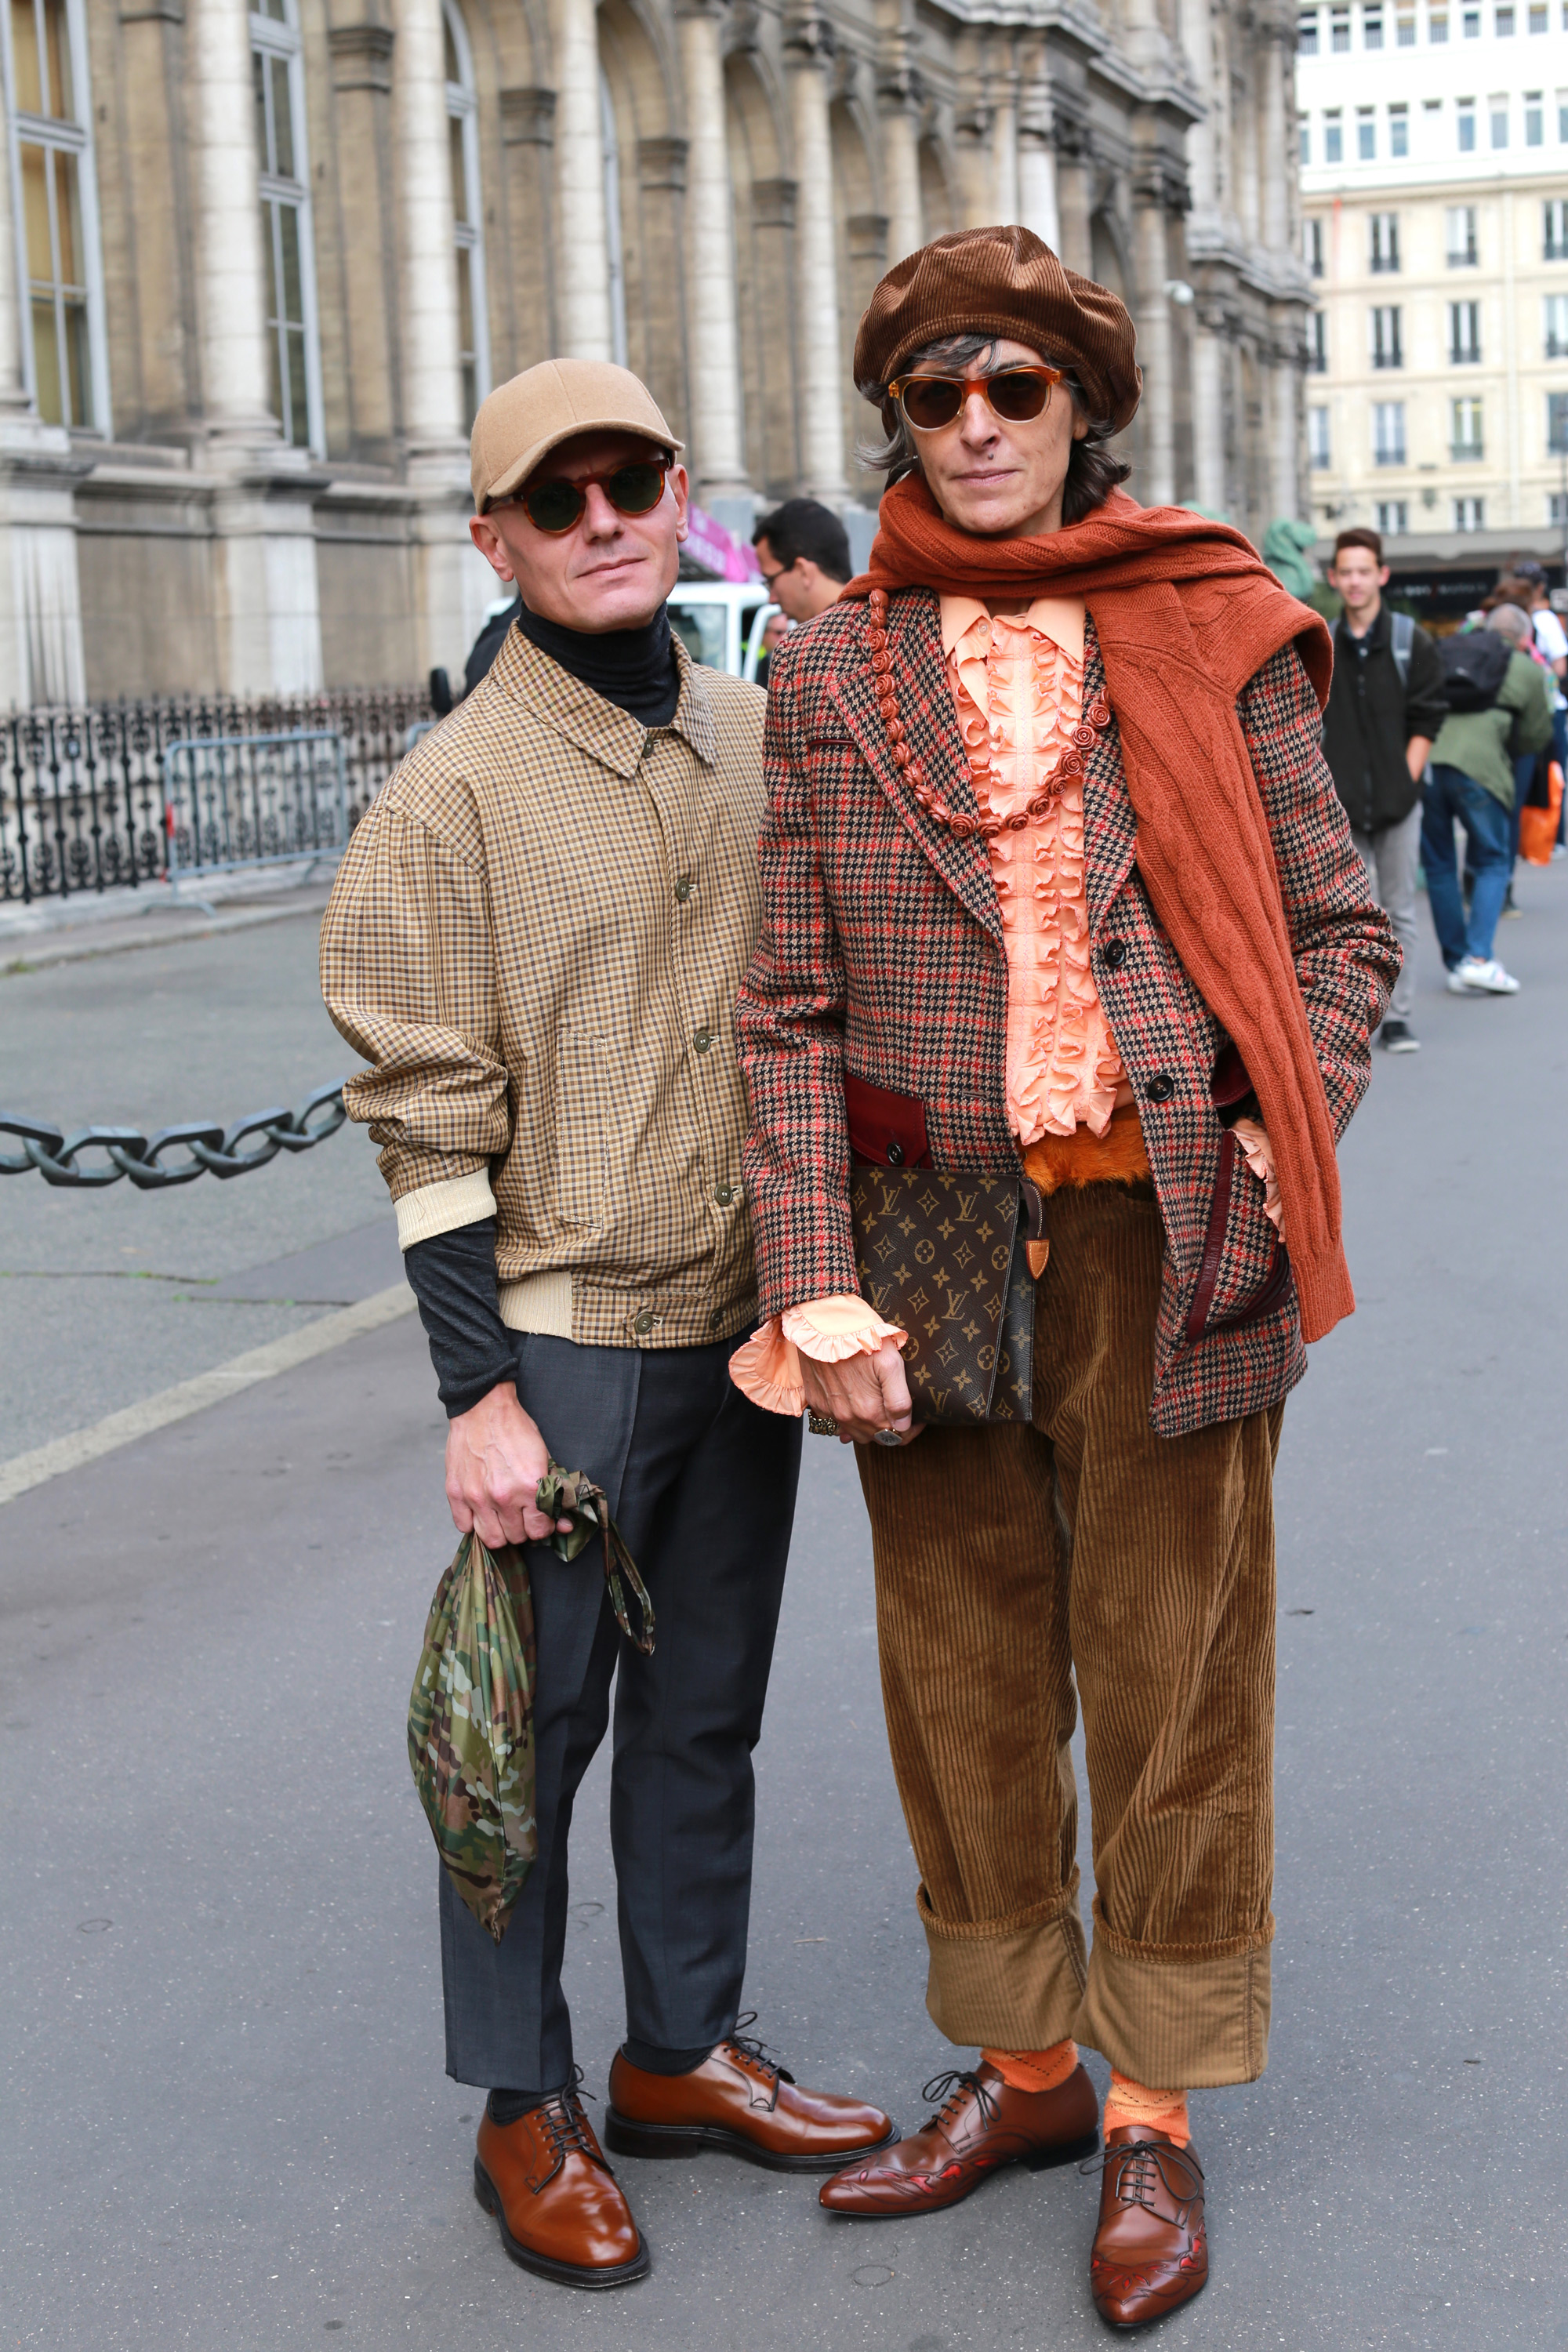 Street style in Paris during Fashion Week, part 2